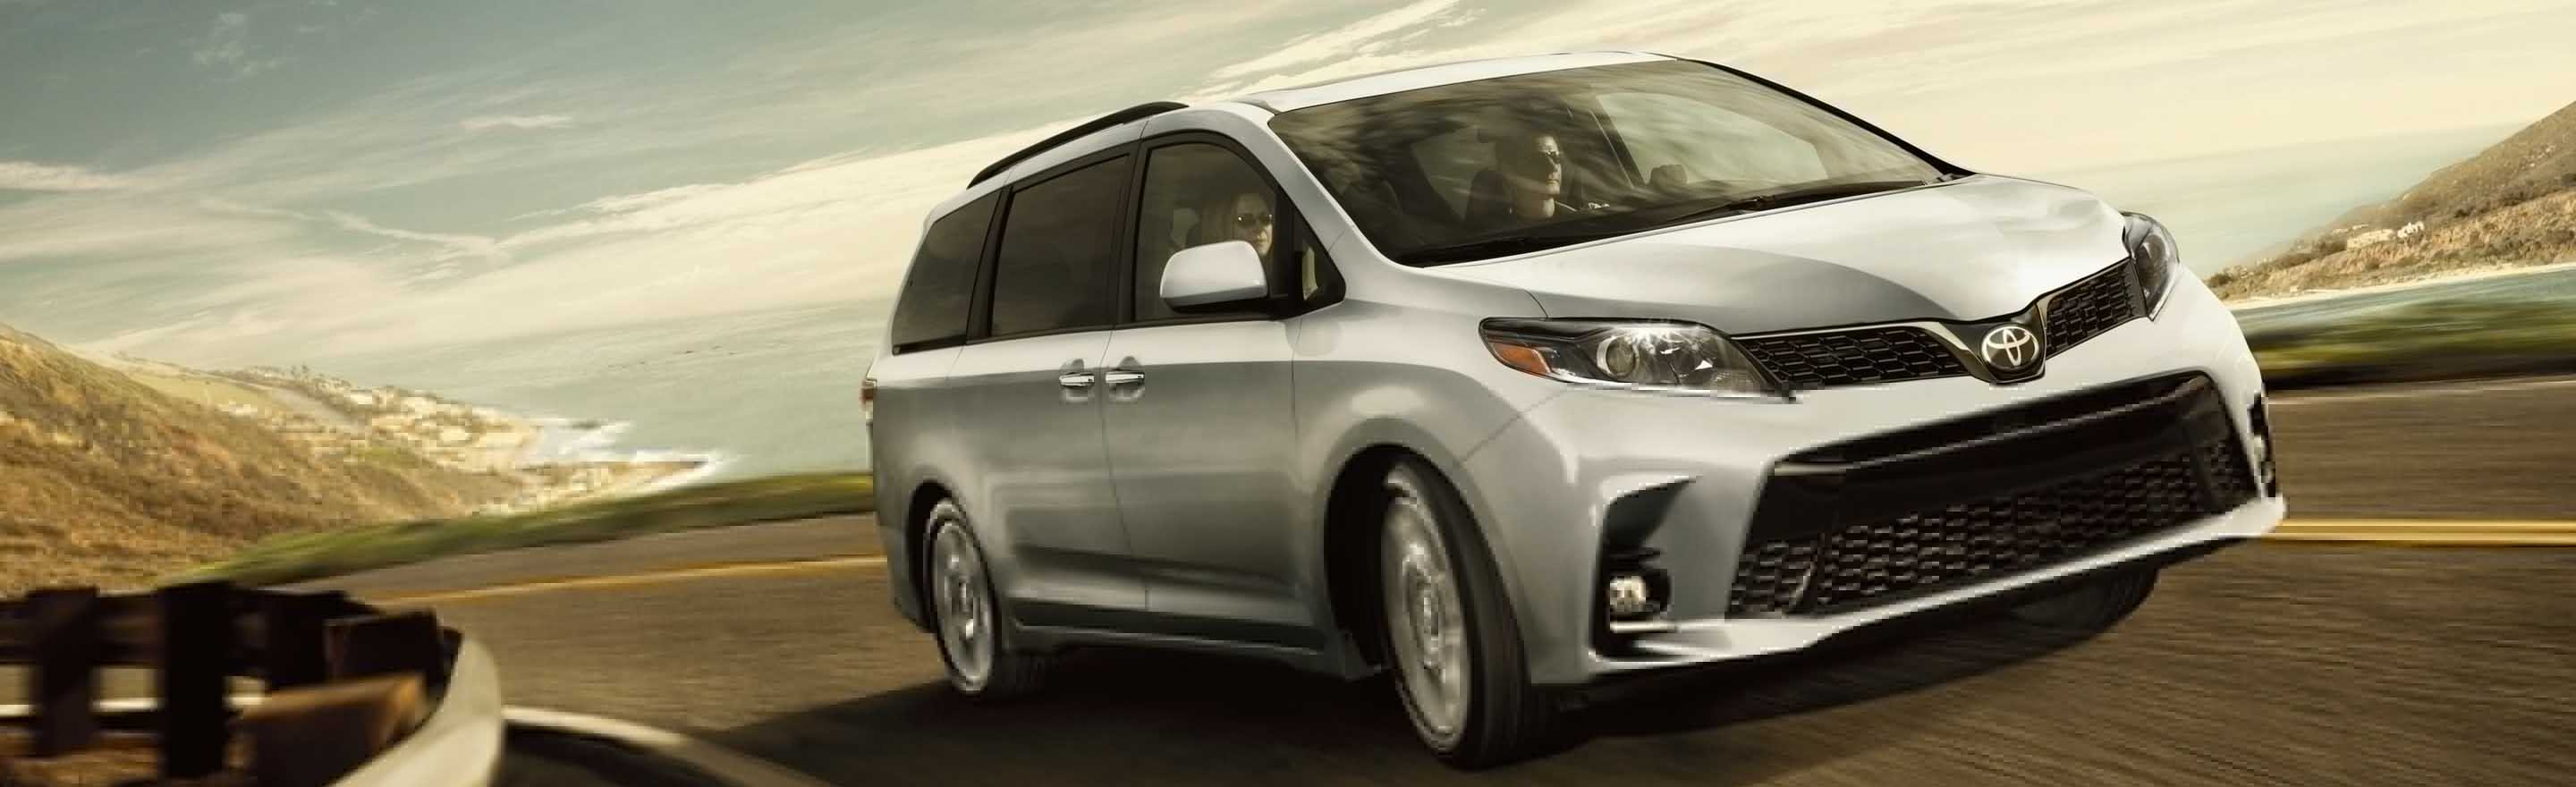 2019 Sienna On Road at Durant Toyota